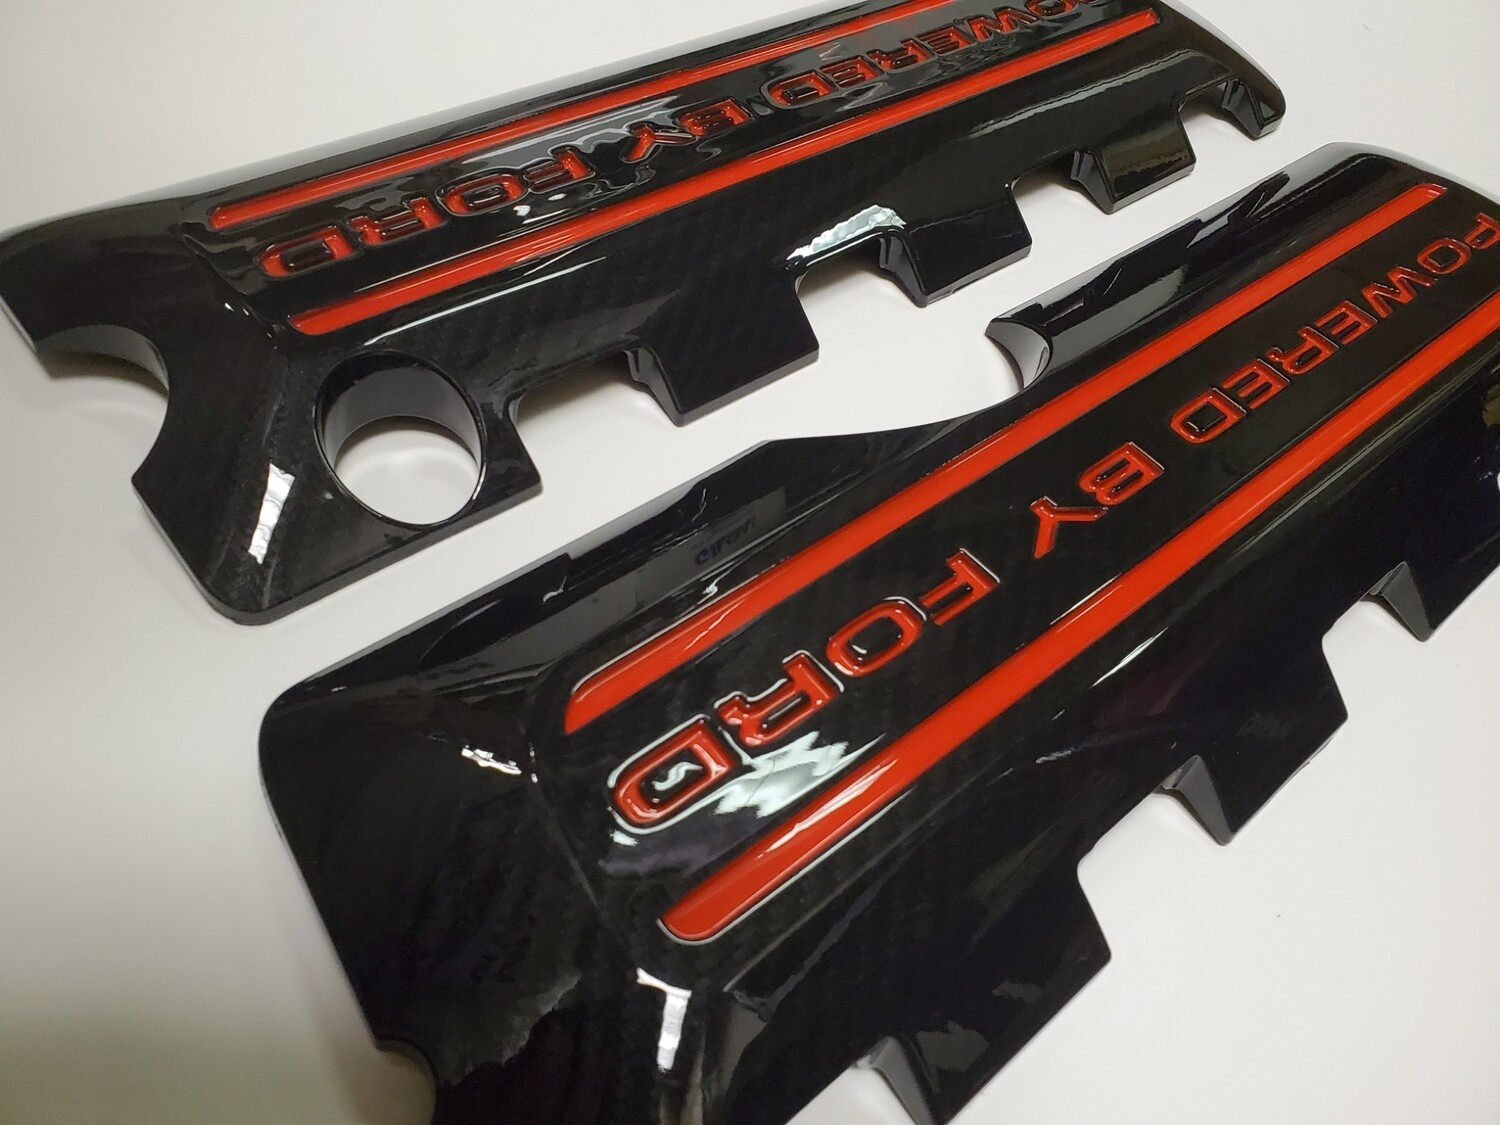 Mustang Coil Covers red letters snd stripes